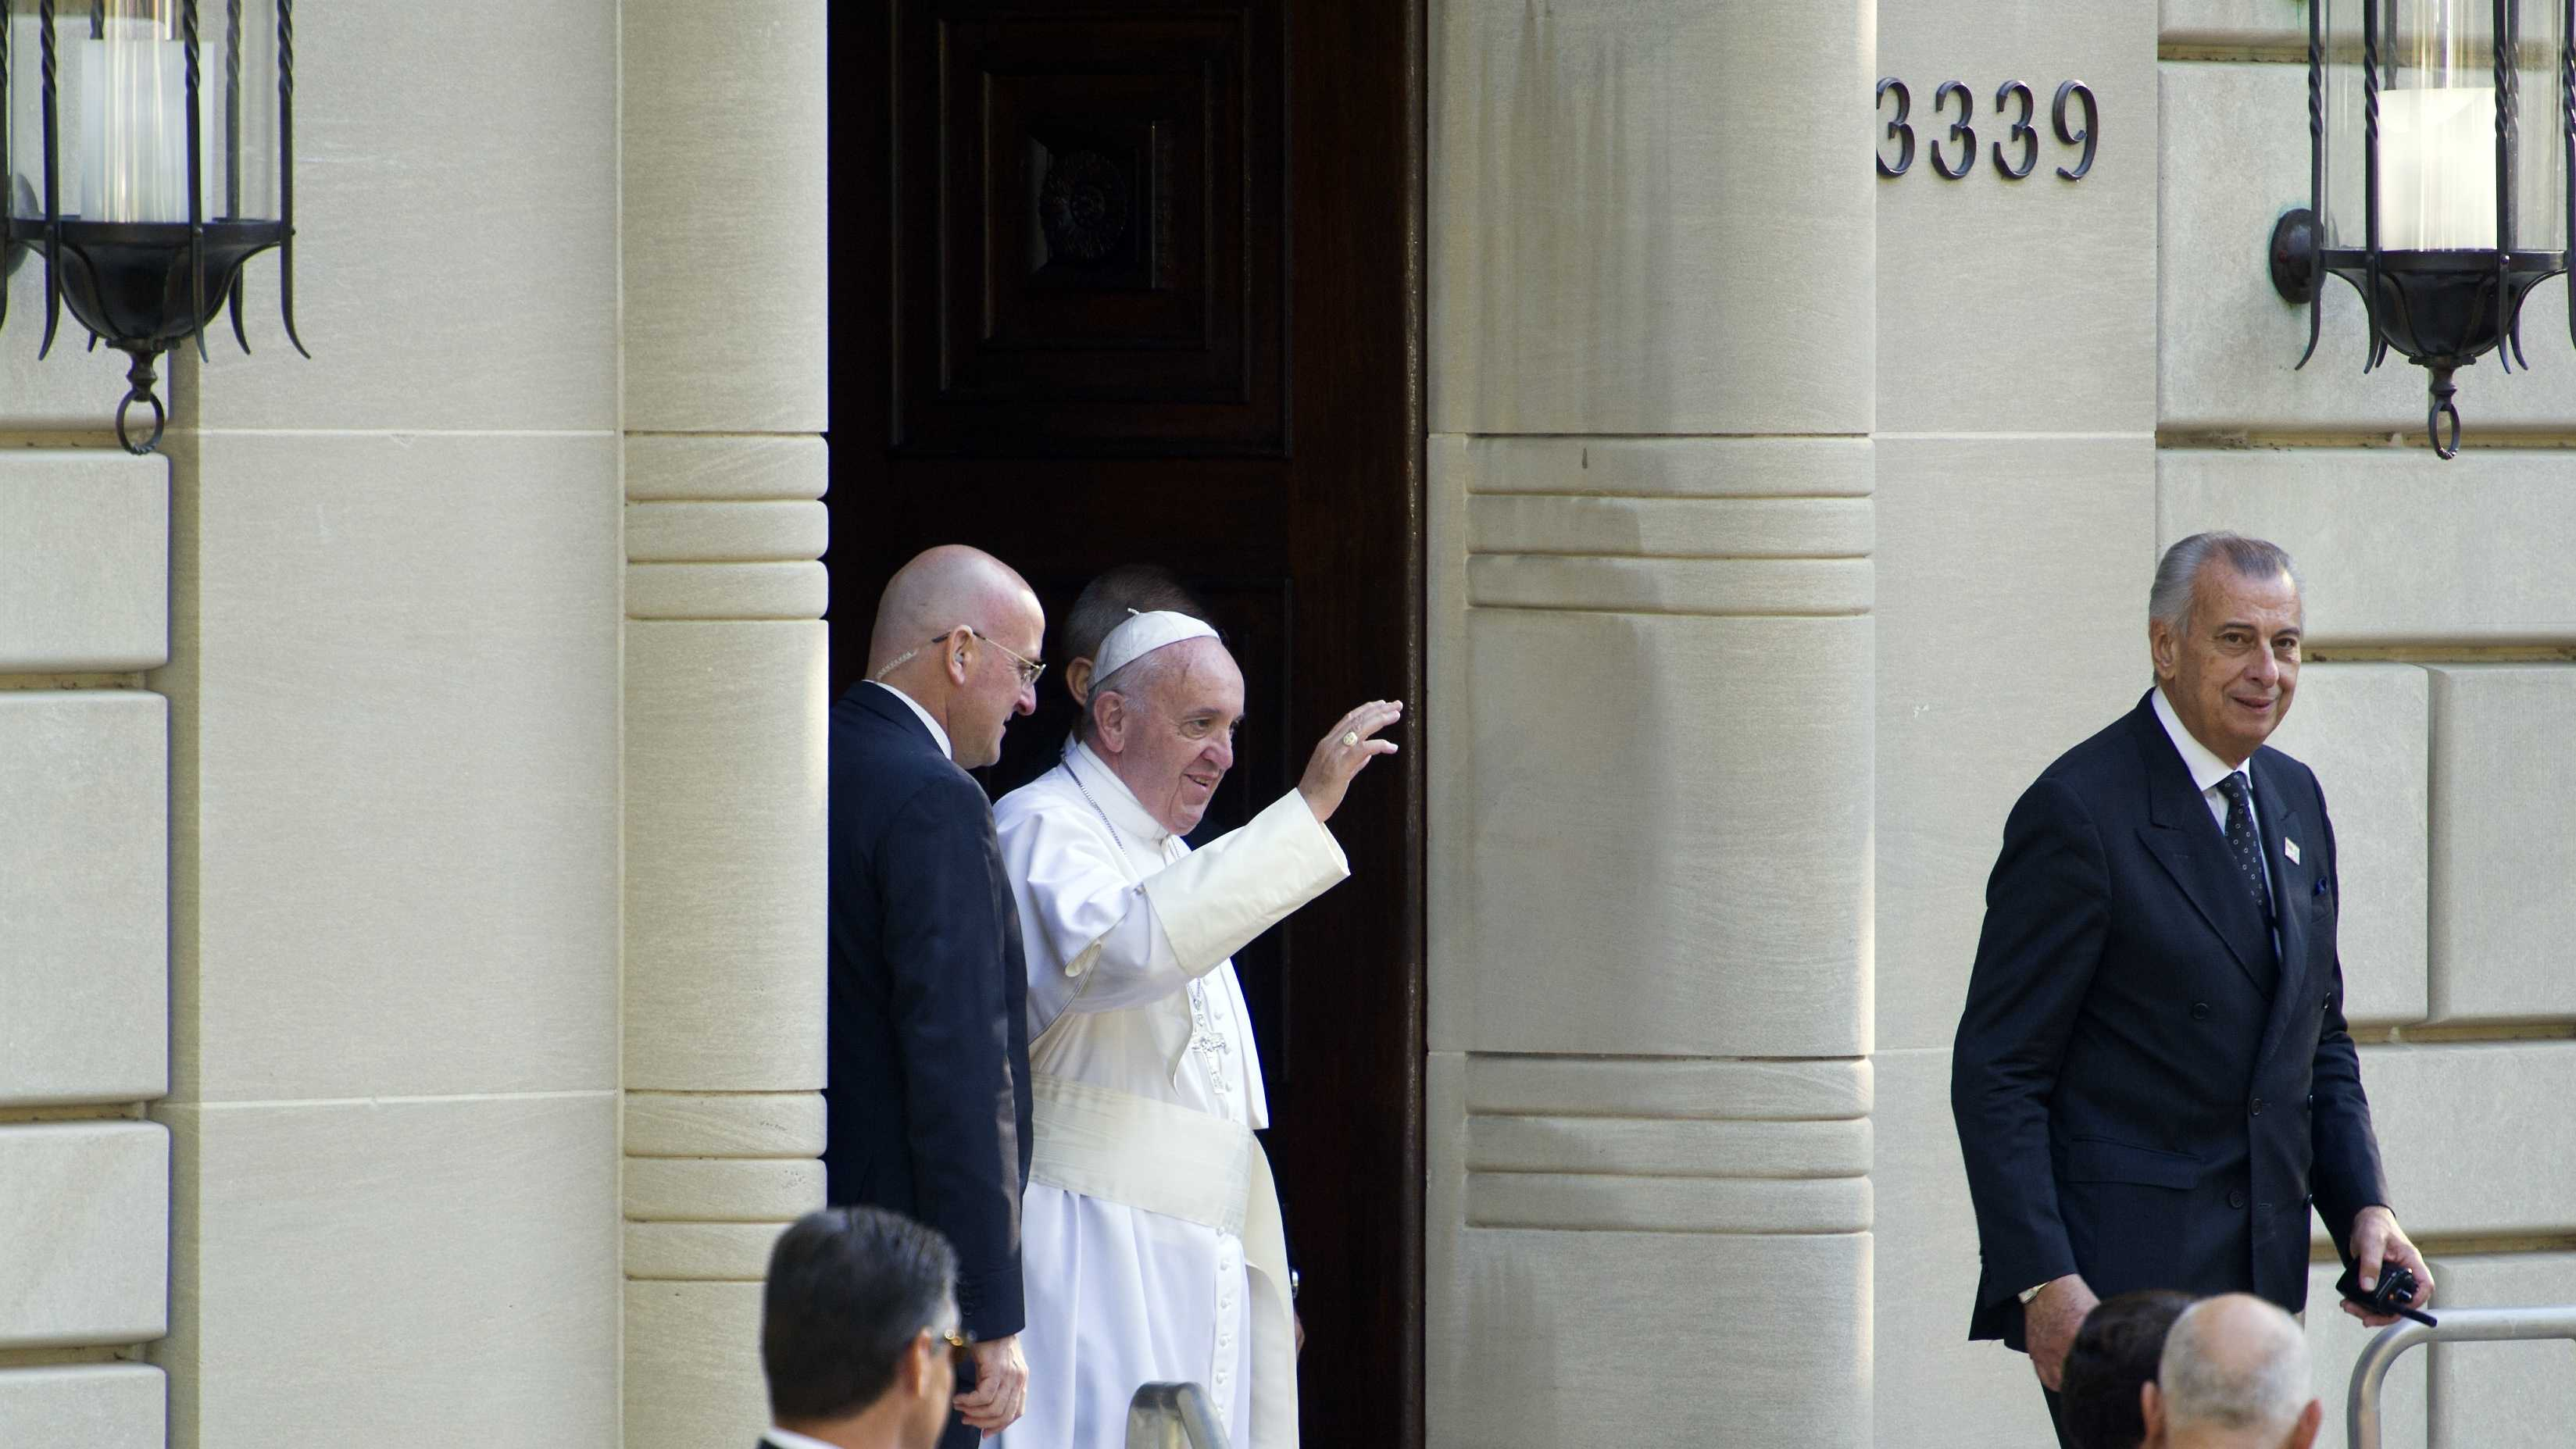 Pope Francis waves as he departs the Apostolic Nunciature, the Vatican's diplomatic mission in Washington, Wednesday, Sept. 23, 2015, for the White House where President Barack Obama will host a state arrival ceremony.